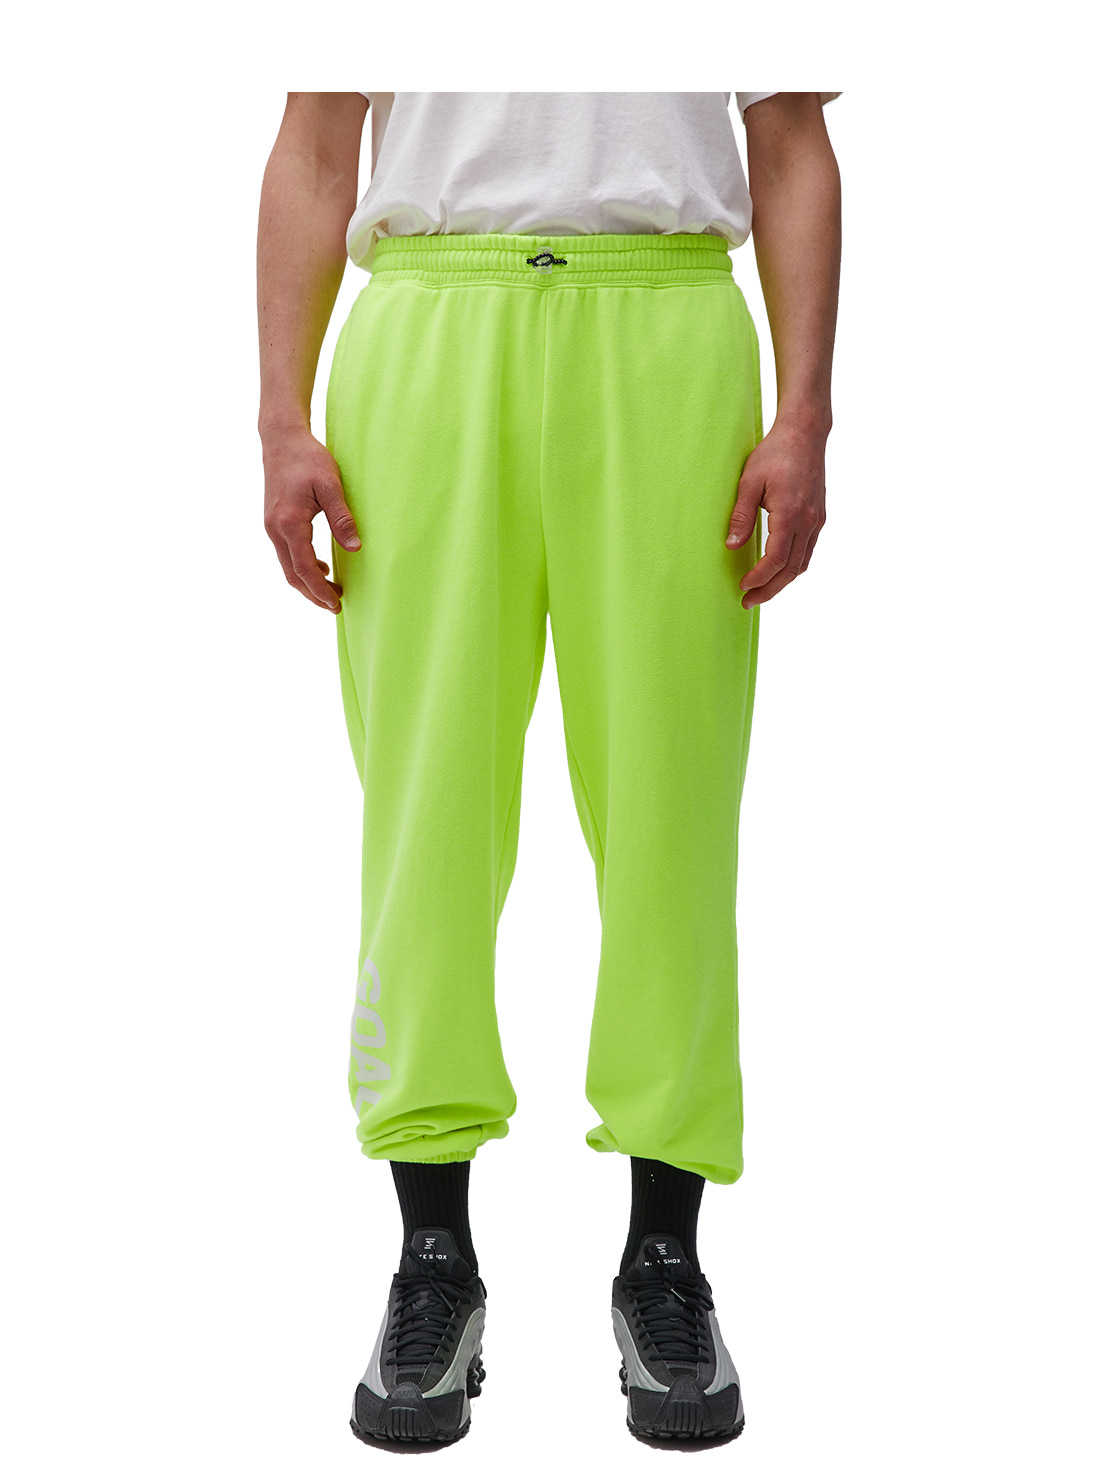 FLOCKING KNIT JOGGER PANTS - LIME YELLOW